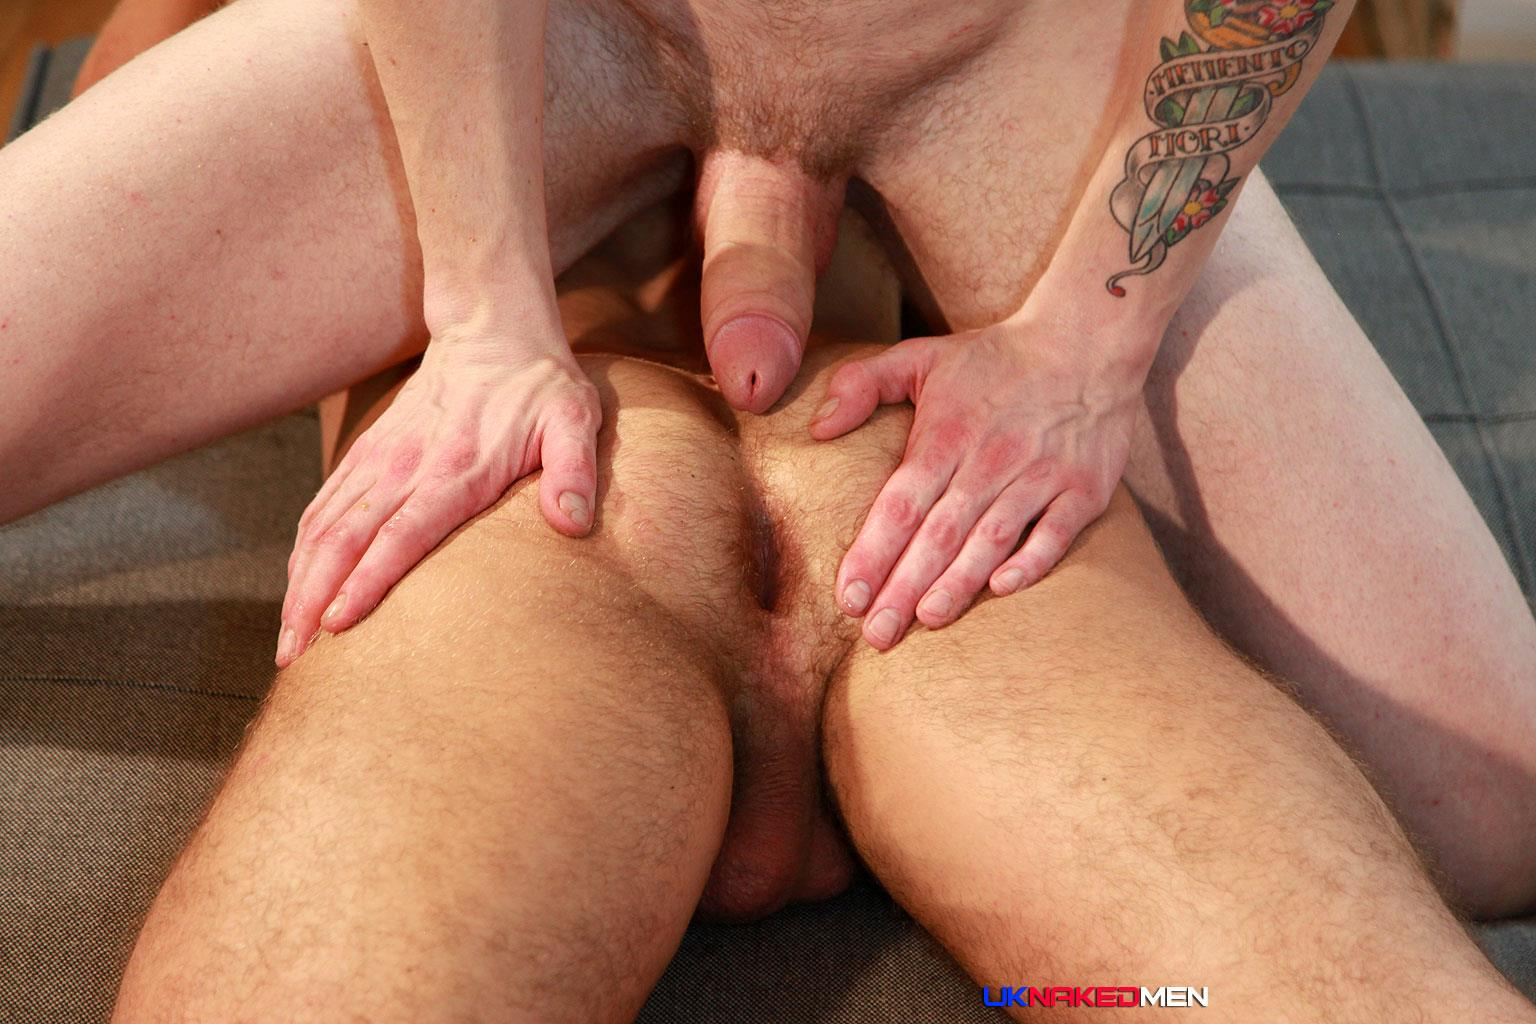 UK-Naked-Men-AJ-Alexander-and-Patryk-Jankowski-Big-Uncut-Cock-Bareback-Sex-Amateur-Gay-Porn-22 Hairy Muscle Hunk Gets Fucked By A Scottish Guy With A Big Uncut Cock